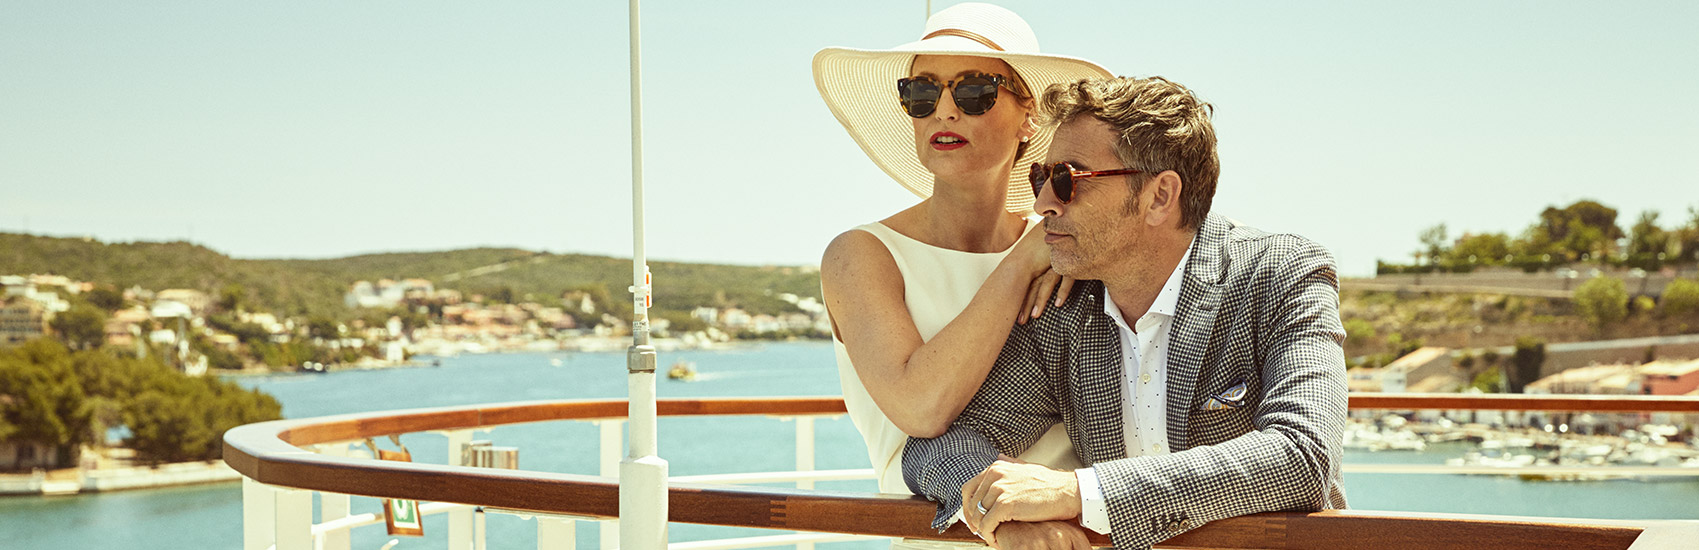 Seabourn Announces 2021 Summer Greece Voyages 4